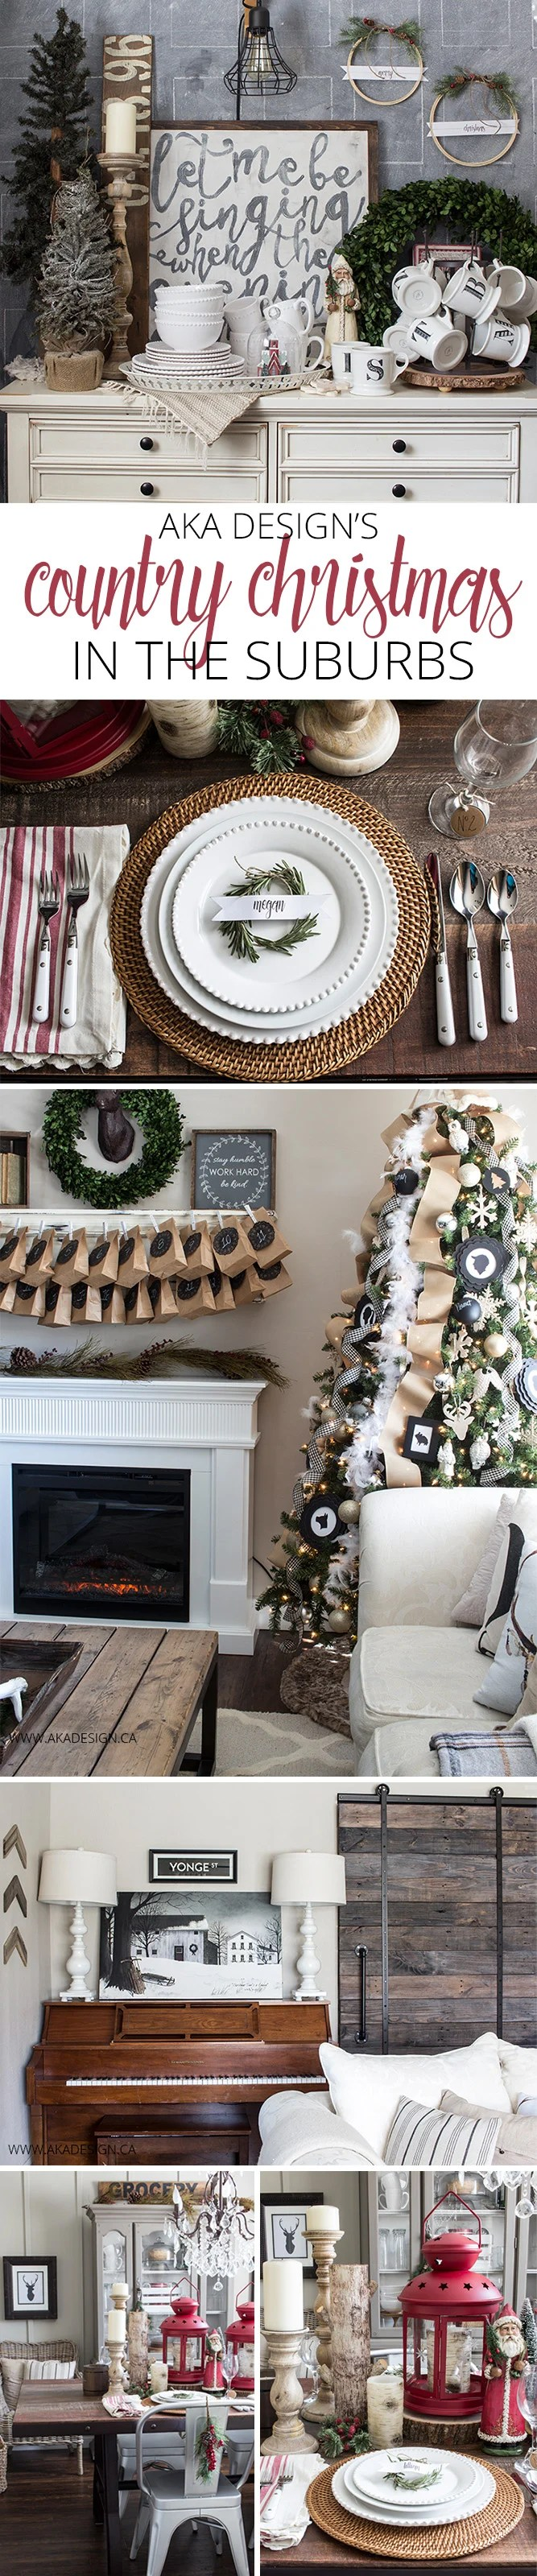 Home Made Lovely Country Christmas Home Tour